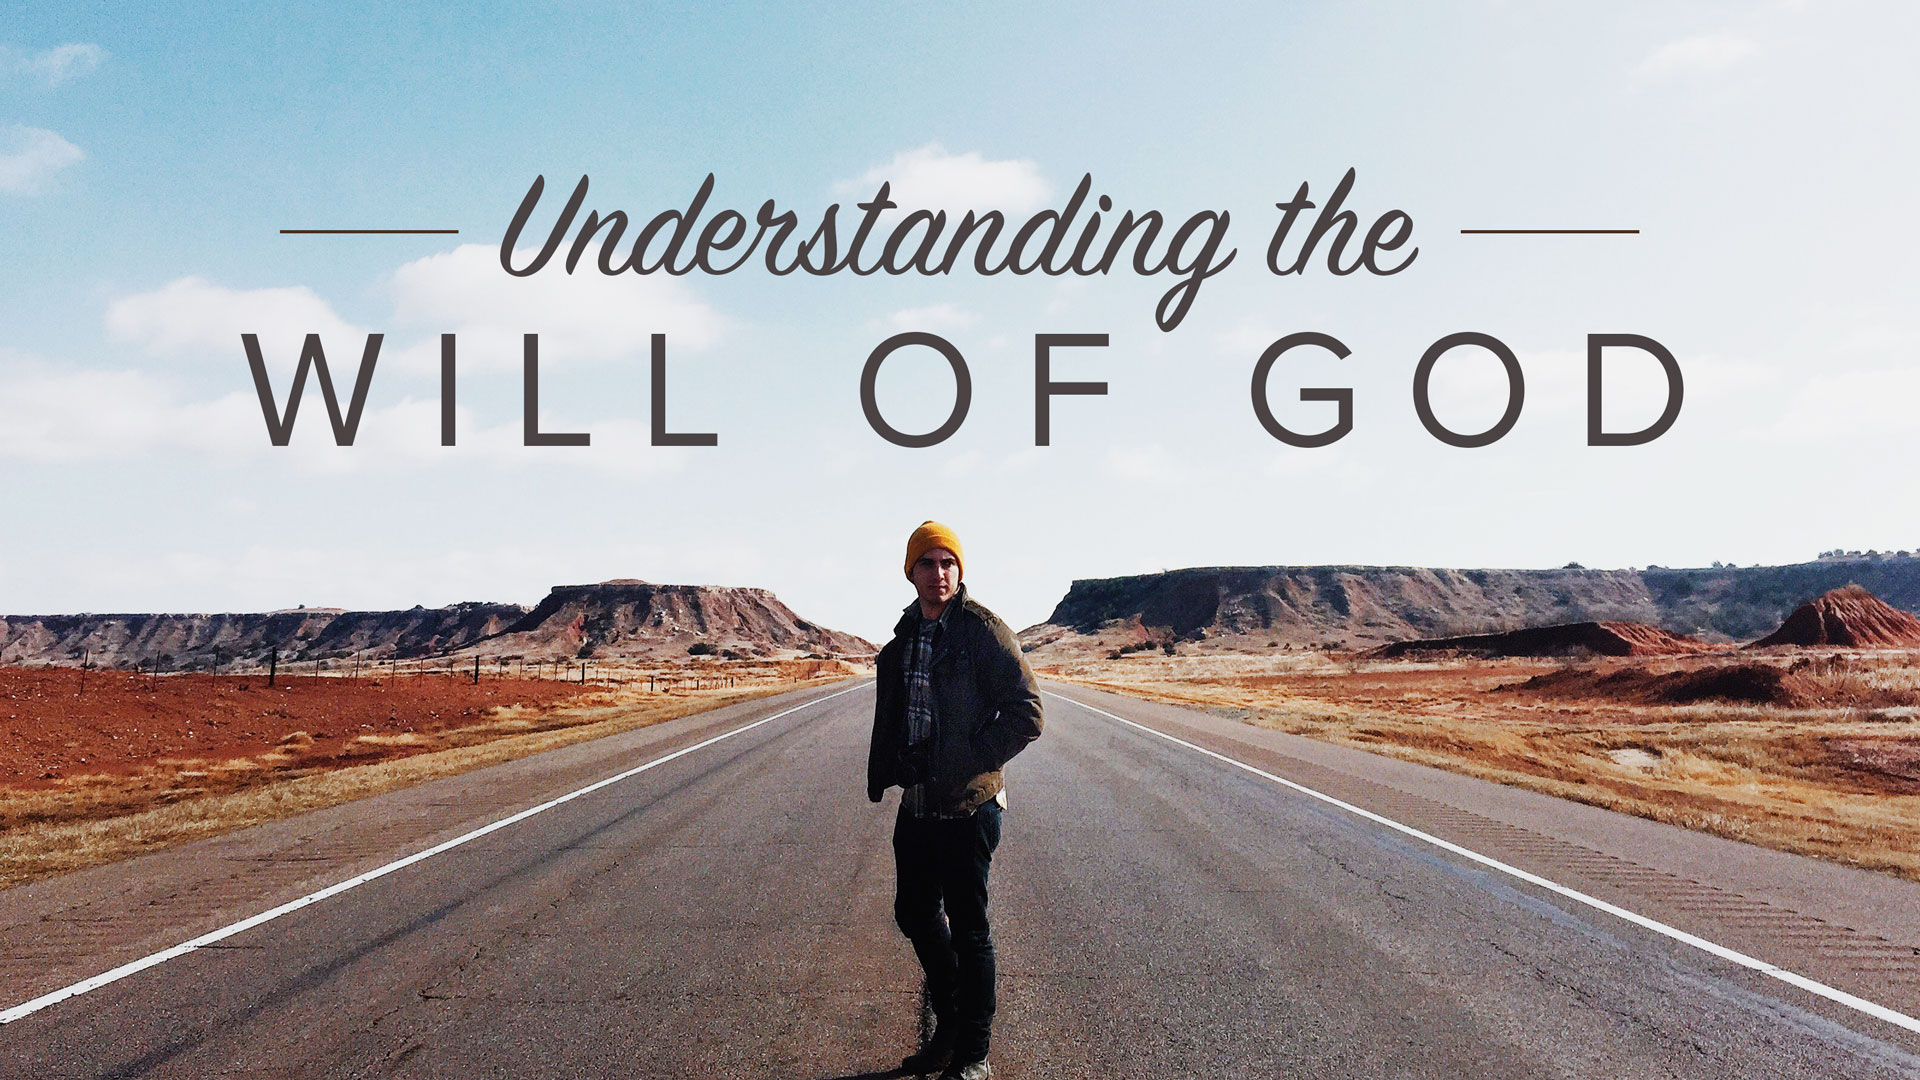 understanding-the-will-of-god-main